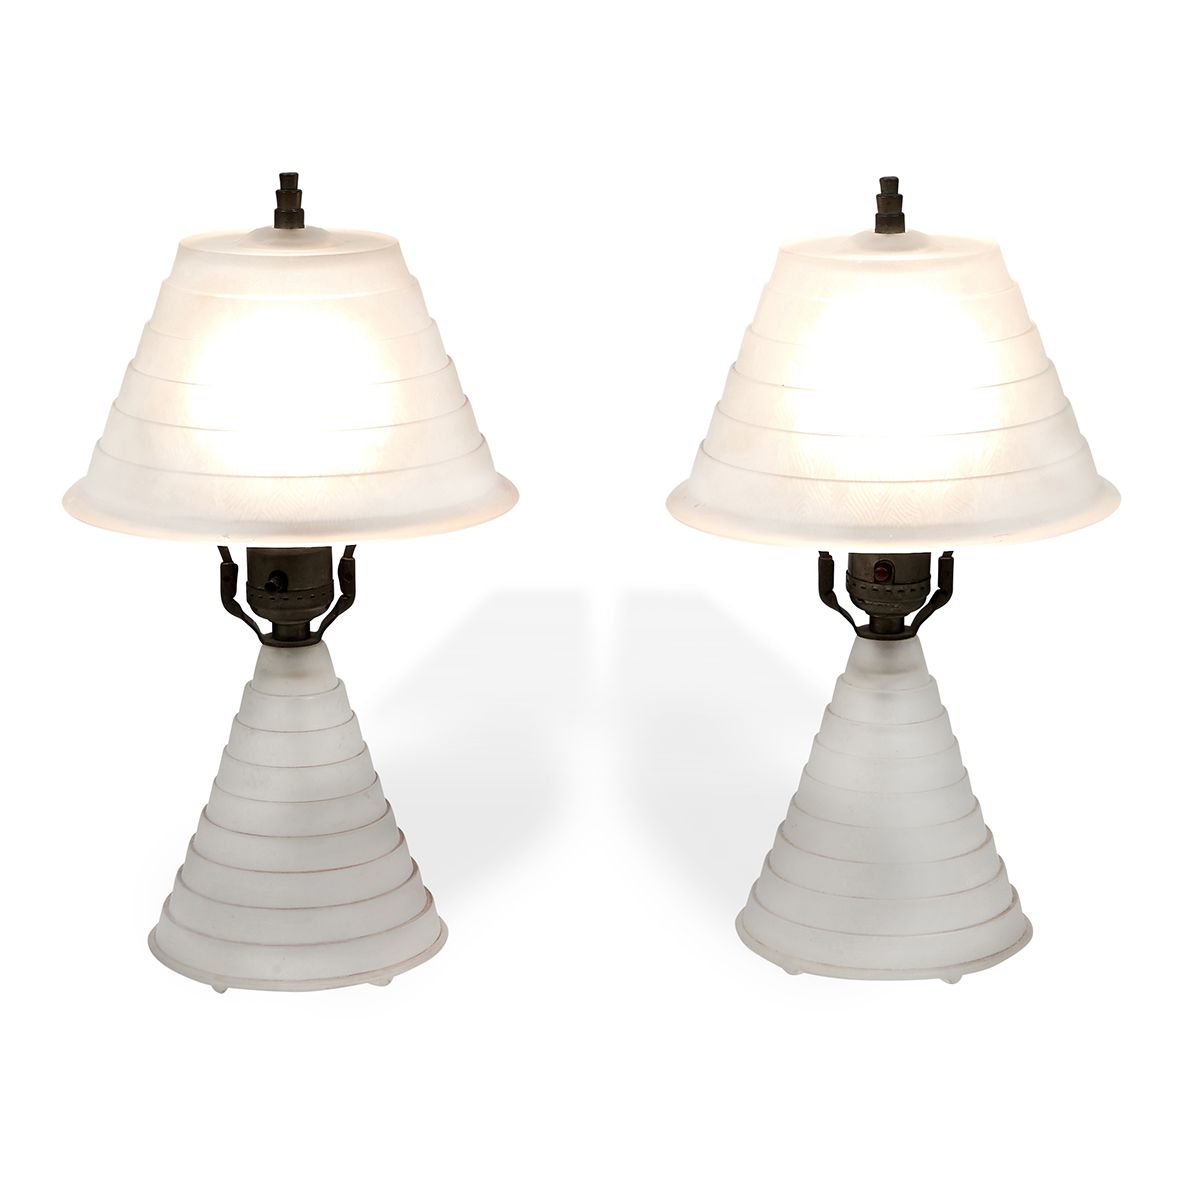 "Art Deco boudoir lamps, pair each: 7""dia x 12""h"